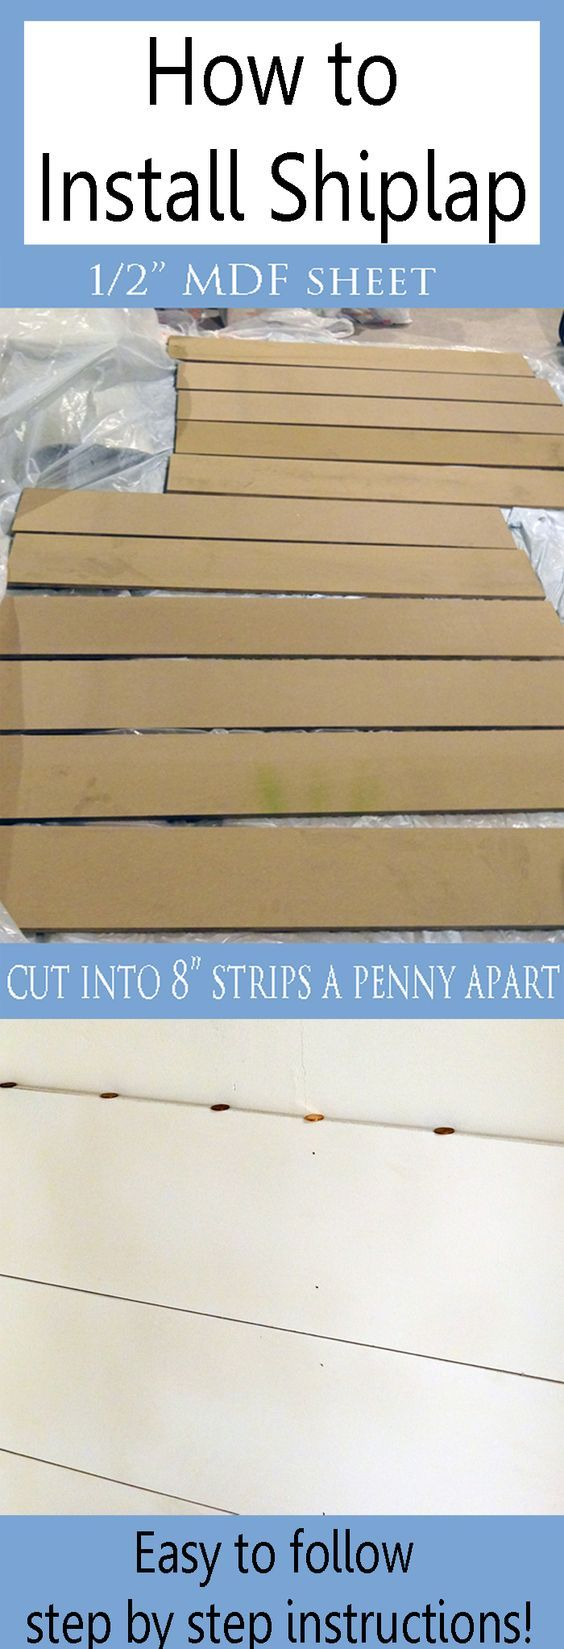 Shiplap is all the rage and is so easy and inexpensive to do! Come learn how to install shiplap with this step by step tutorial at Provident ?Home Design.: